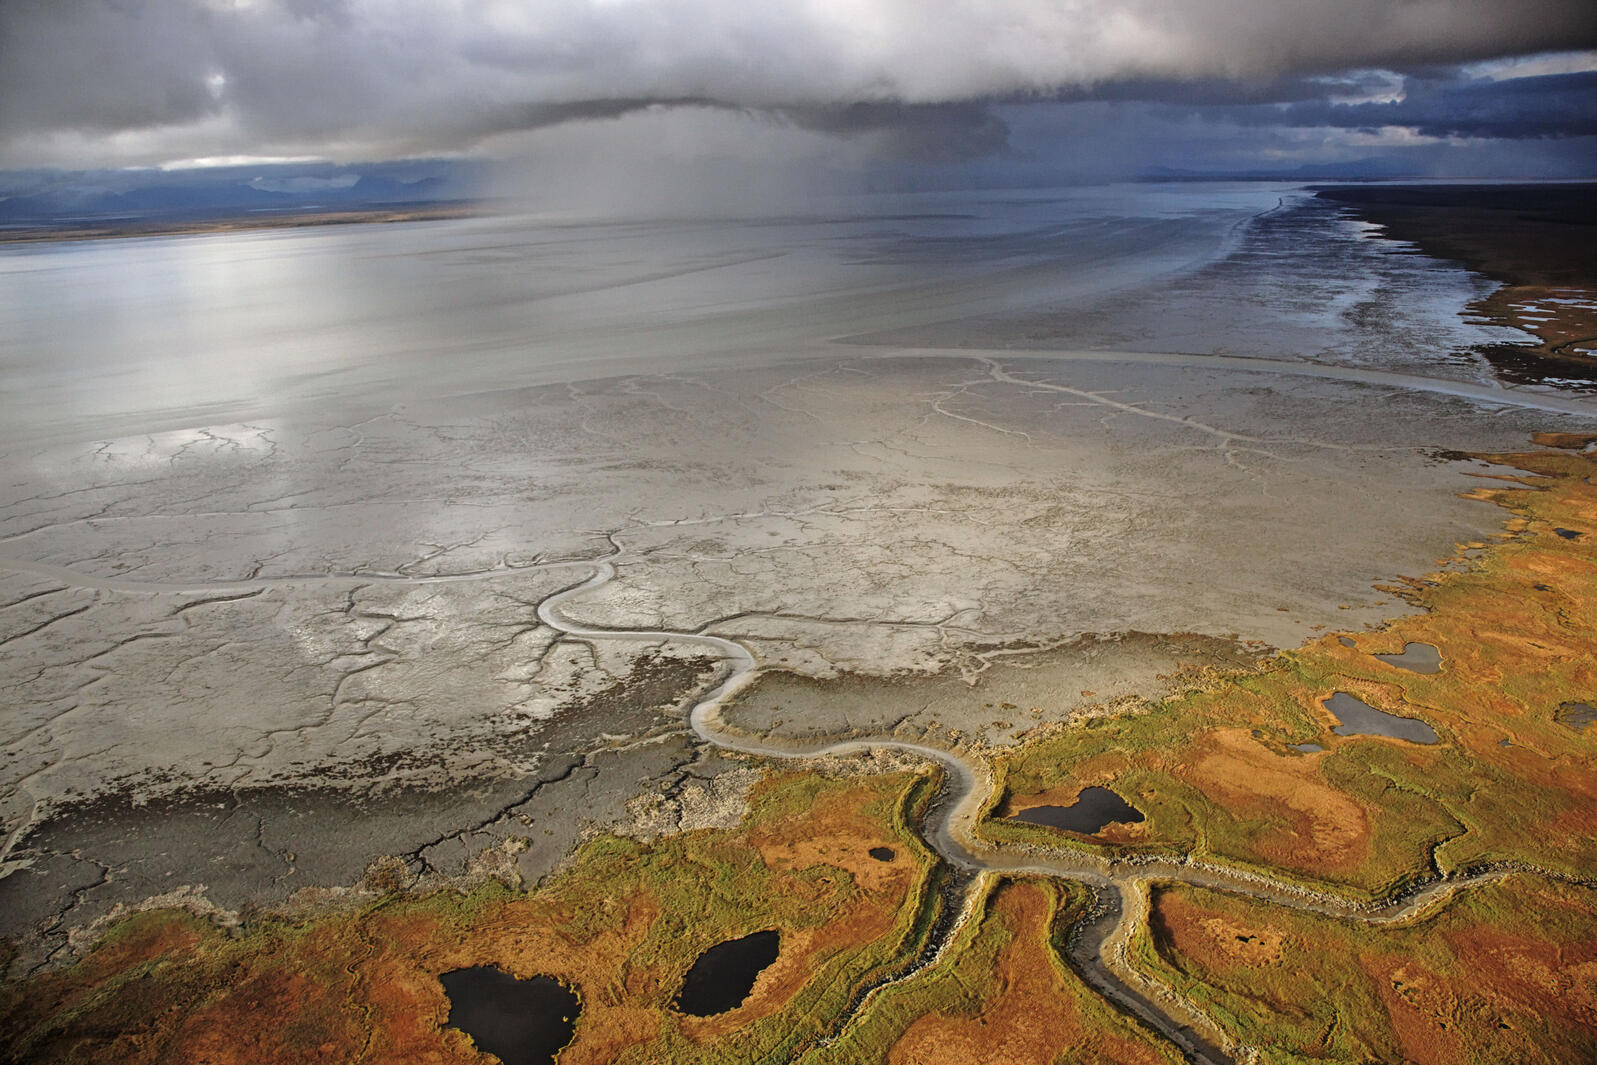 Dark clouds converge over Nushagak Bay, in one of the pristine watersheds that would be threatened by the proposed mine and its toxic tailings ponds. Photograph by Michael Medford/National Geographic Stock